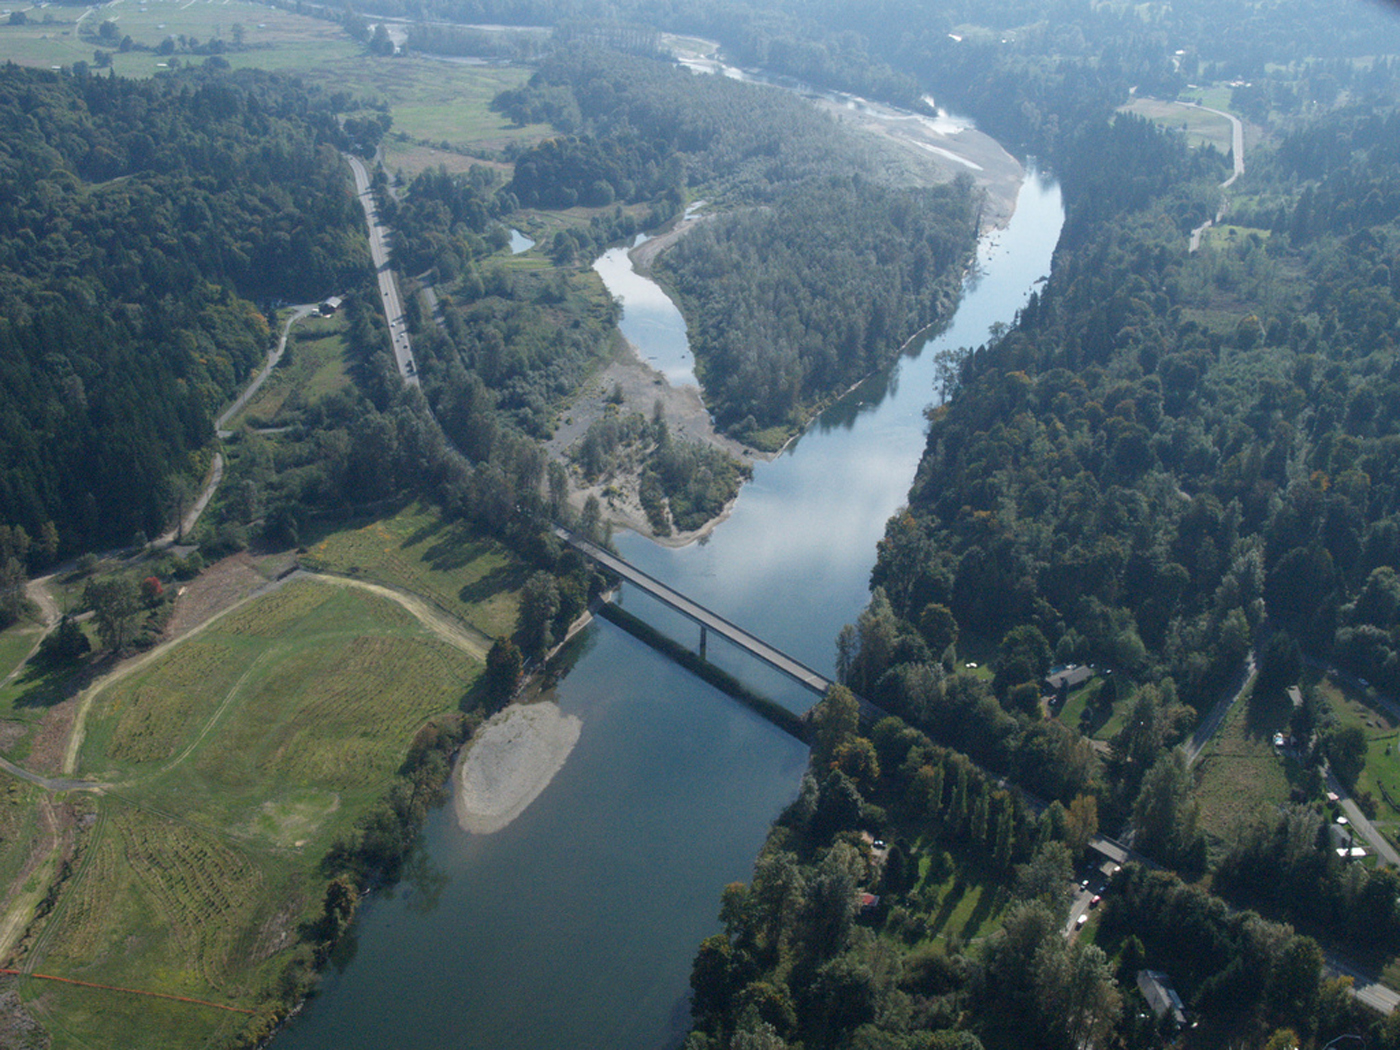 July 18, 2011 WSDOT starts $160M project to widen SR 522